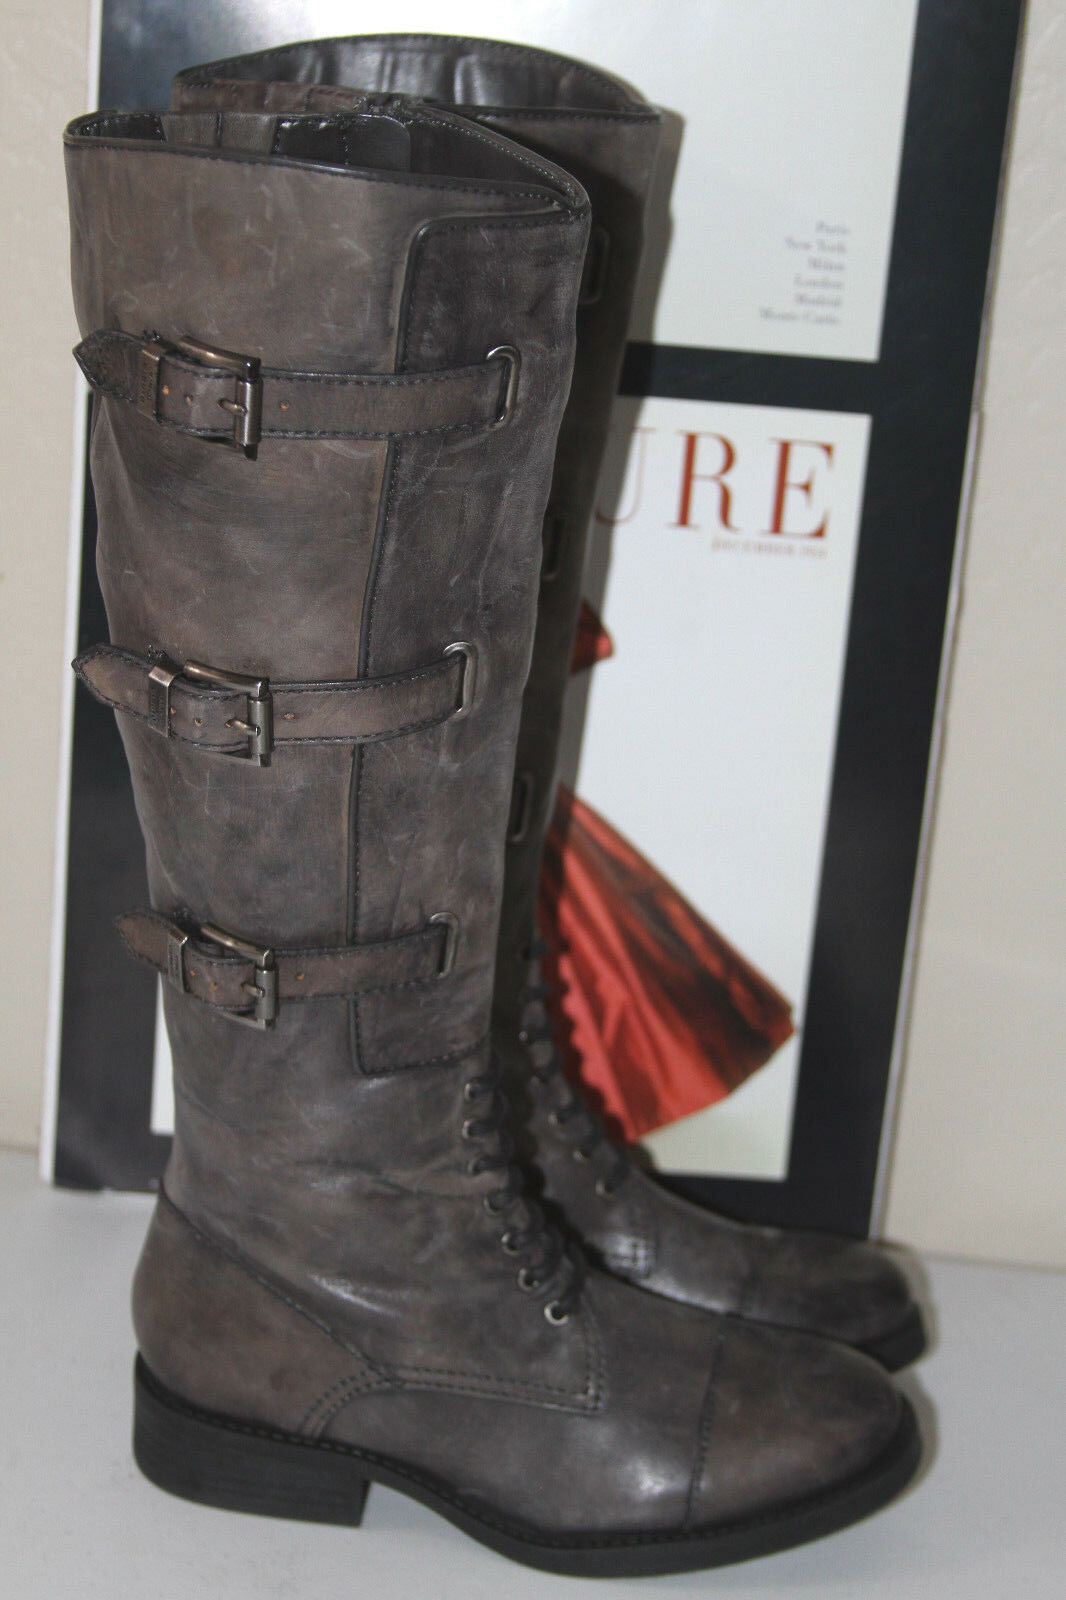 75 VINCE CAMUTO FENTON LEATHER BUCKED KNEE HIGH BOOTS  SZ 5  MSRP 229